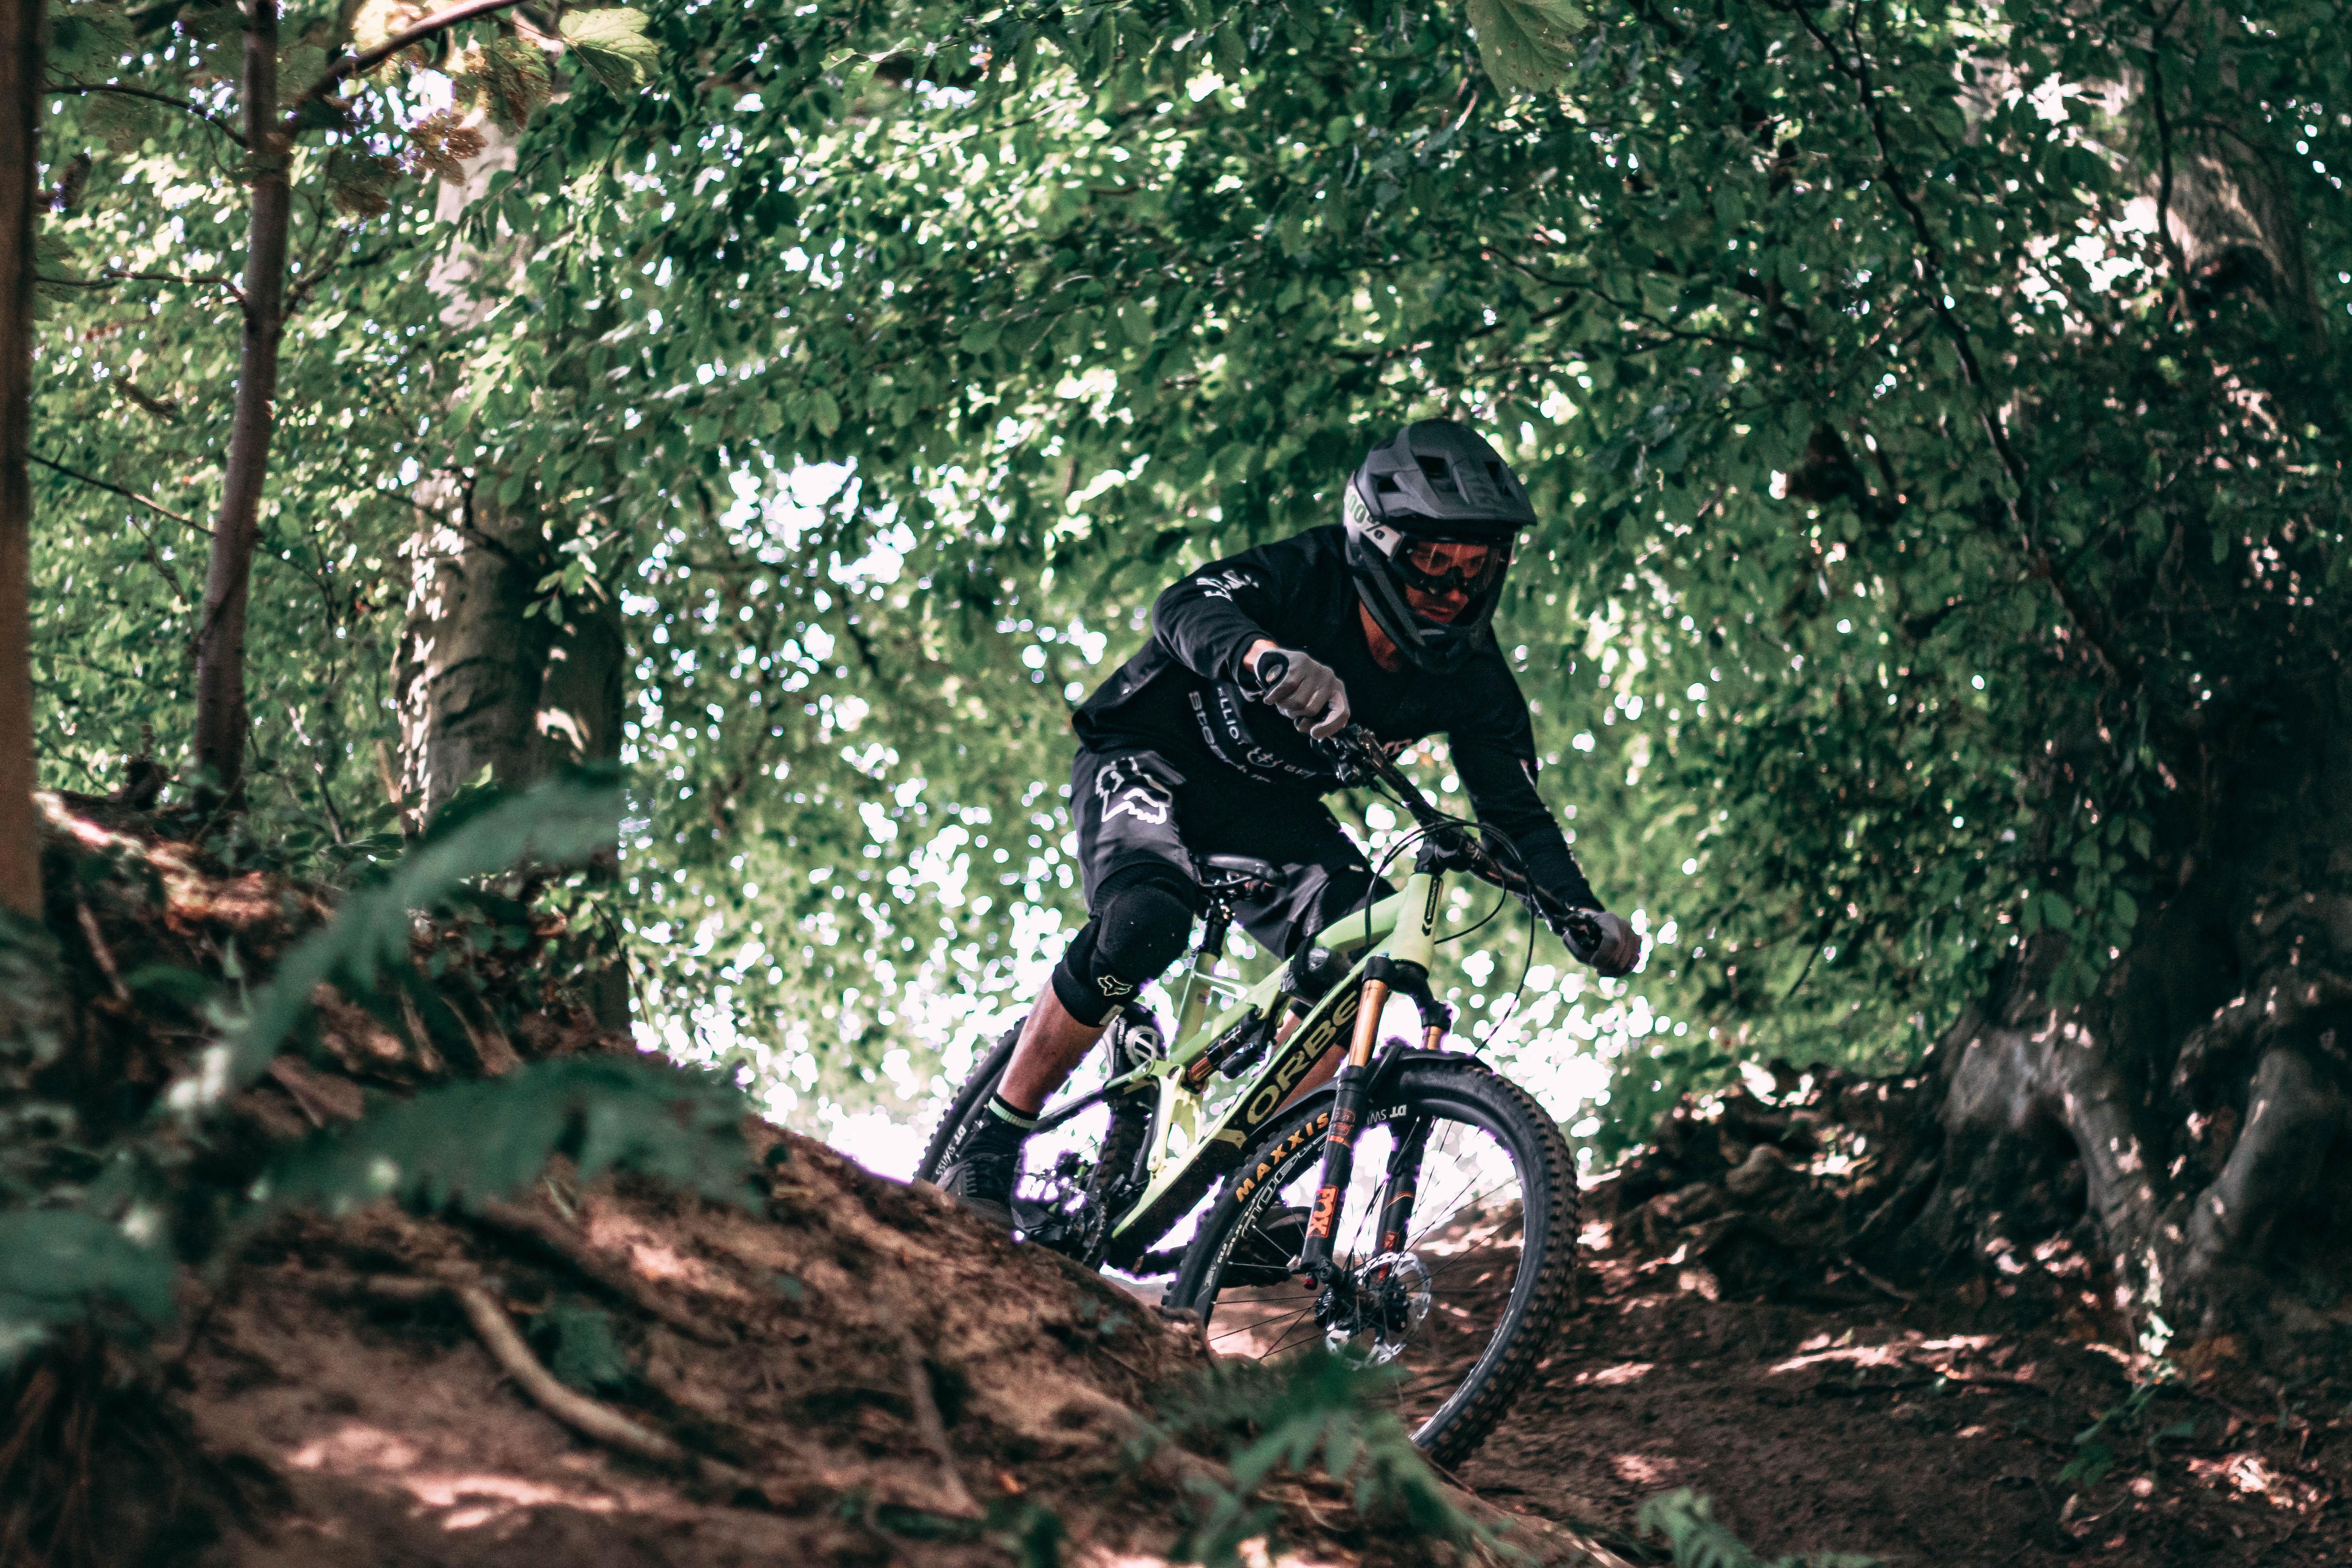 Lewis Bell Photography x TotalMTB: Beginners Photography Workshop